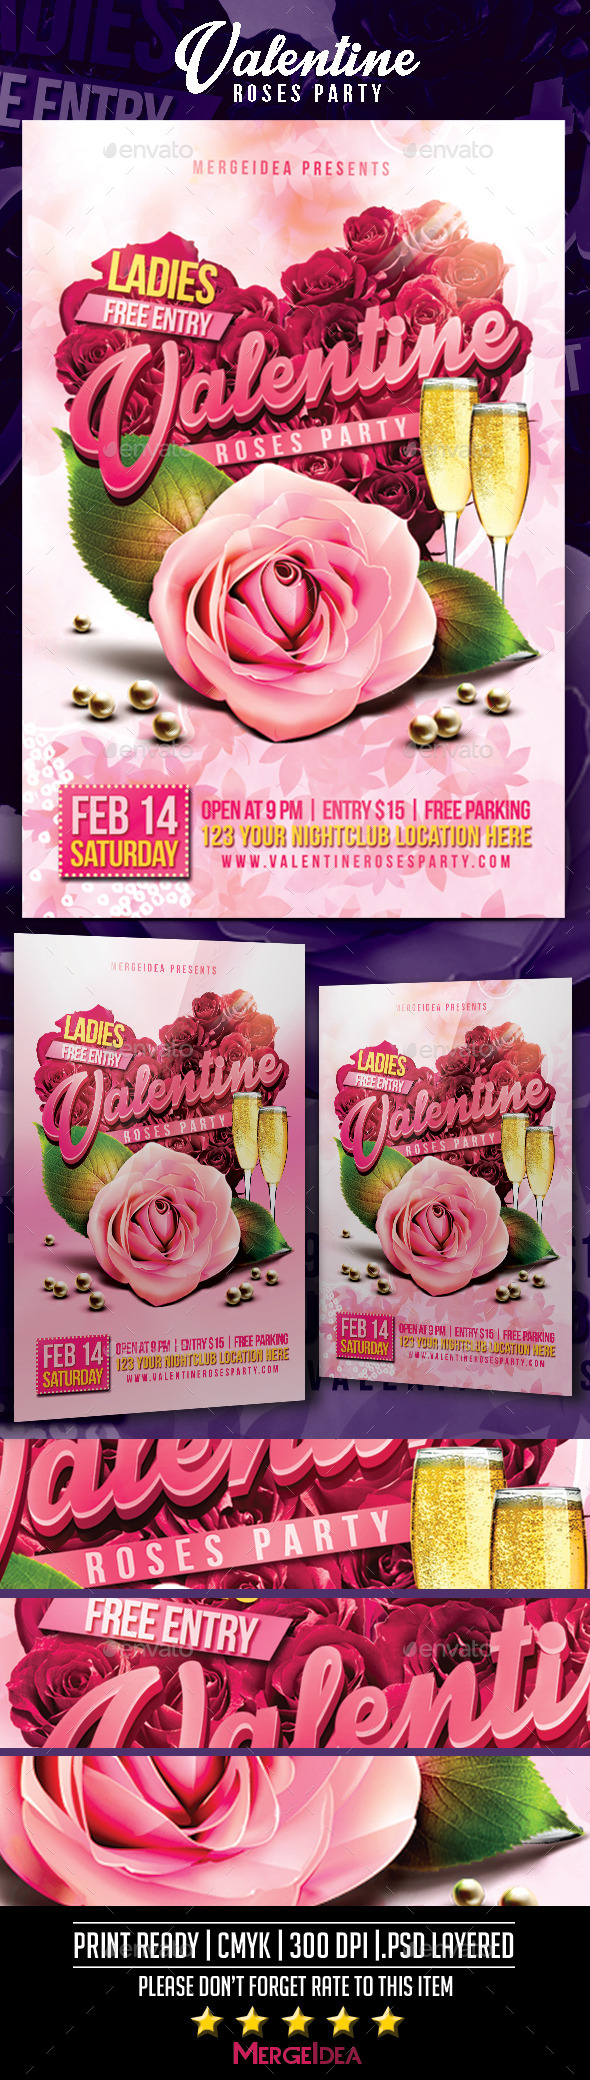 Valentine Roses Party Flyer - Clubs & Parties Events